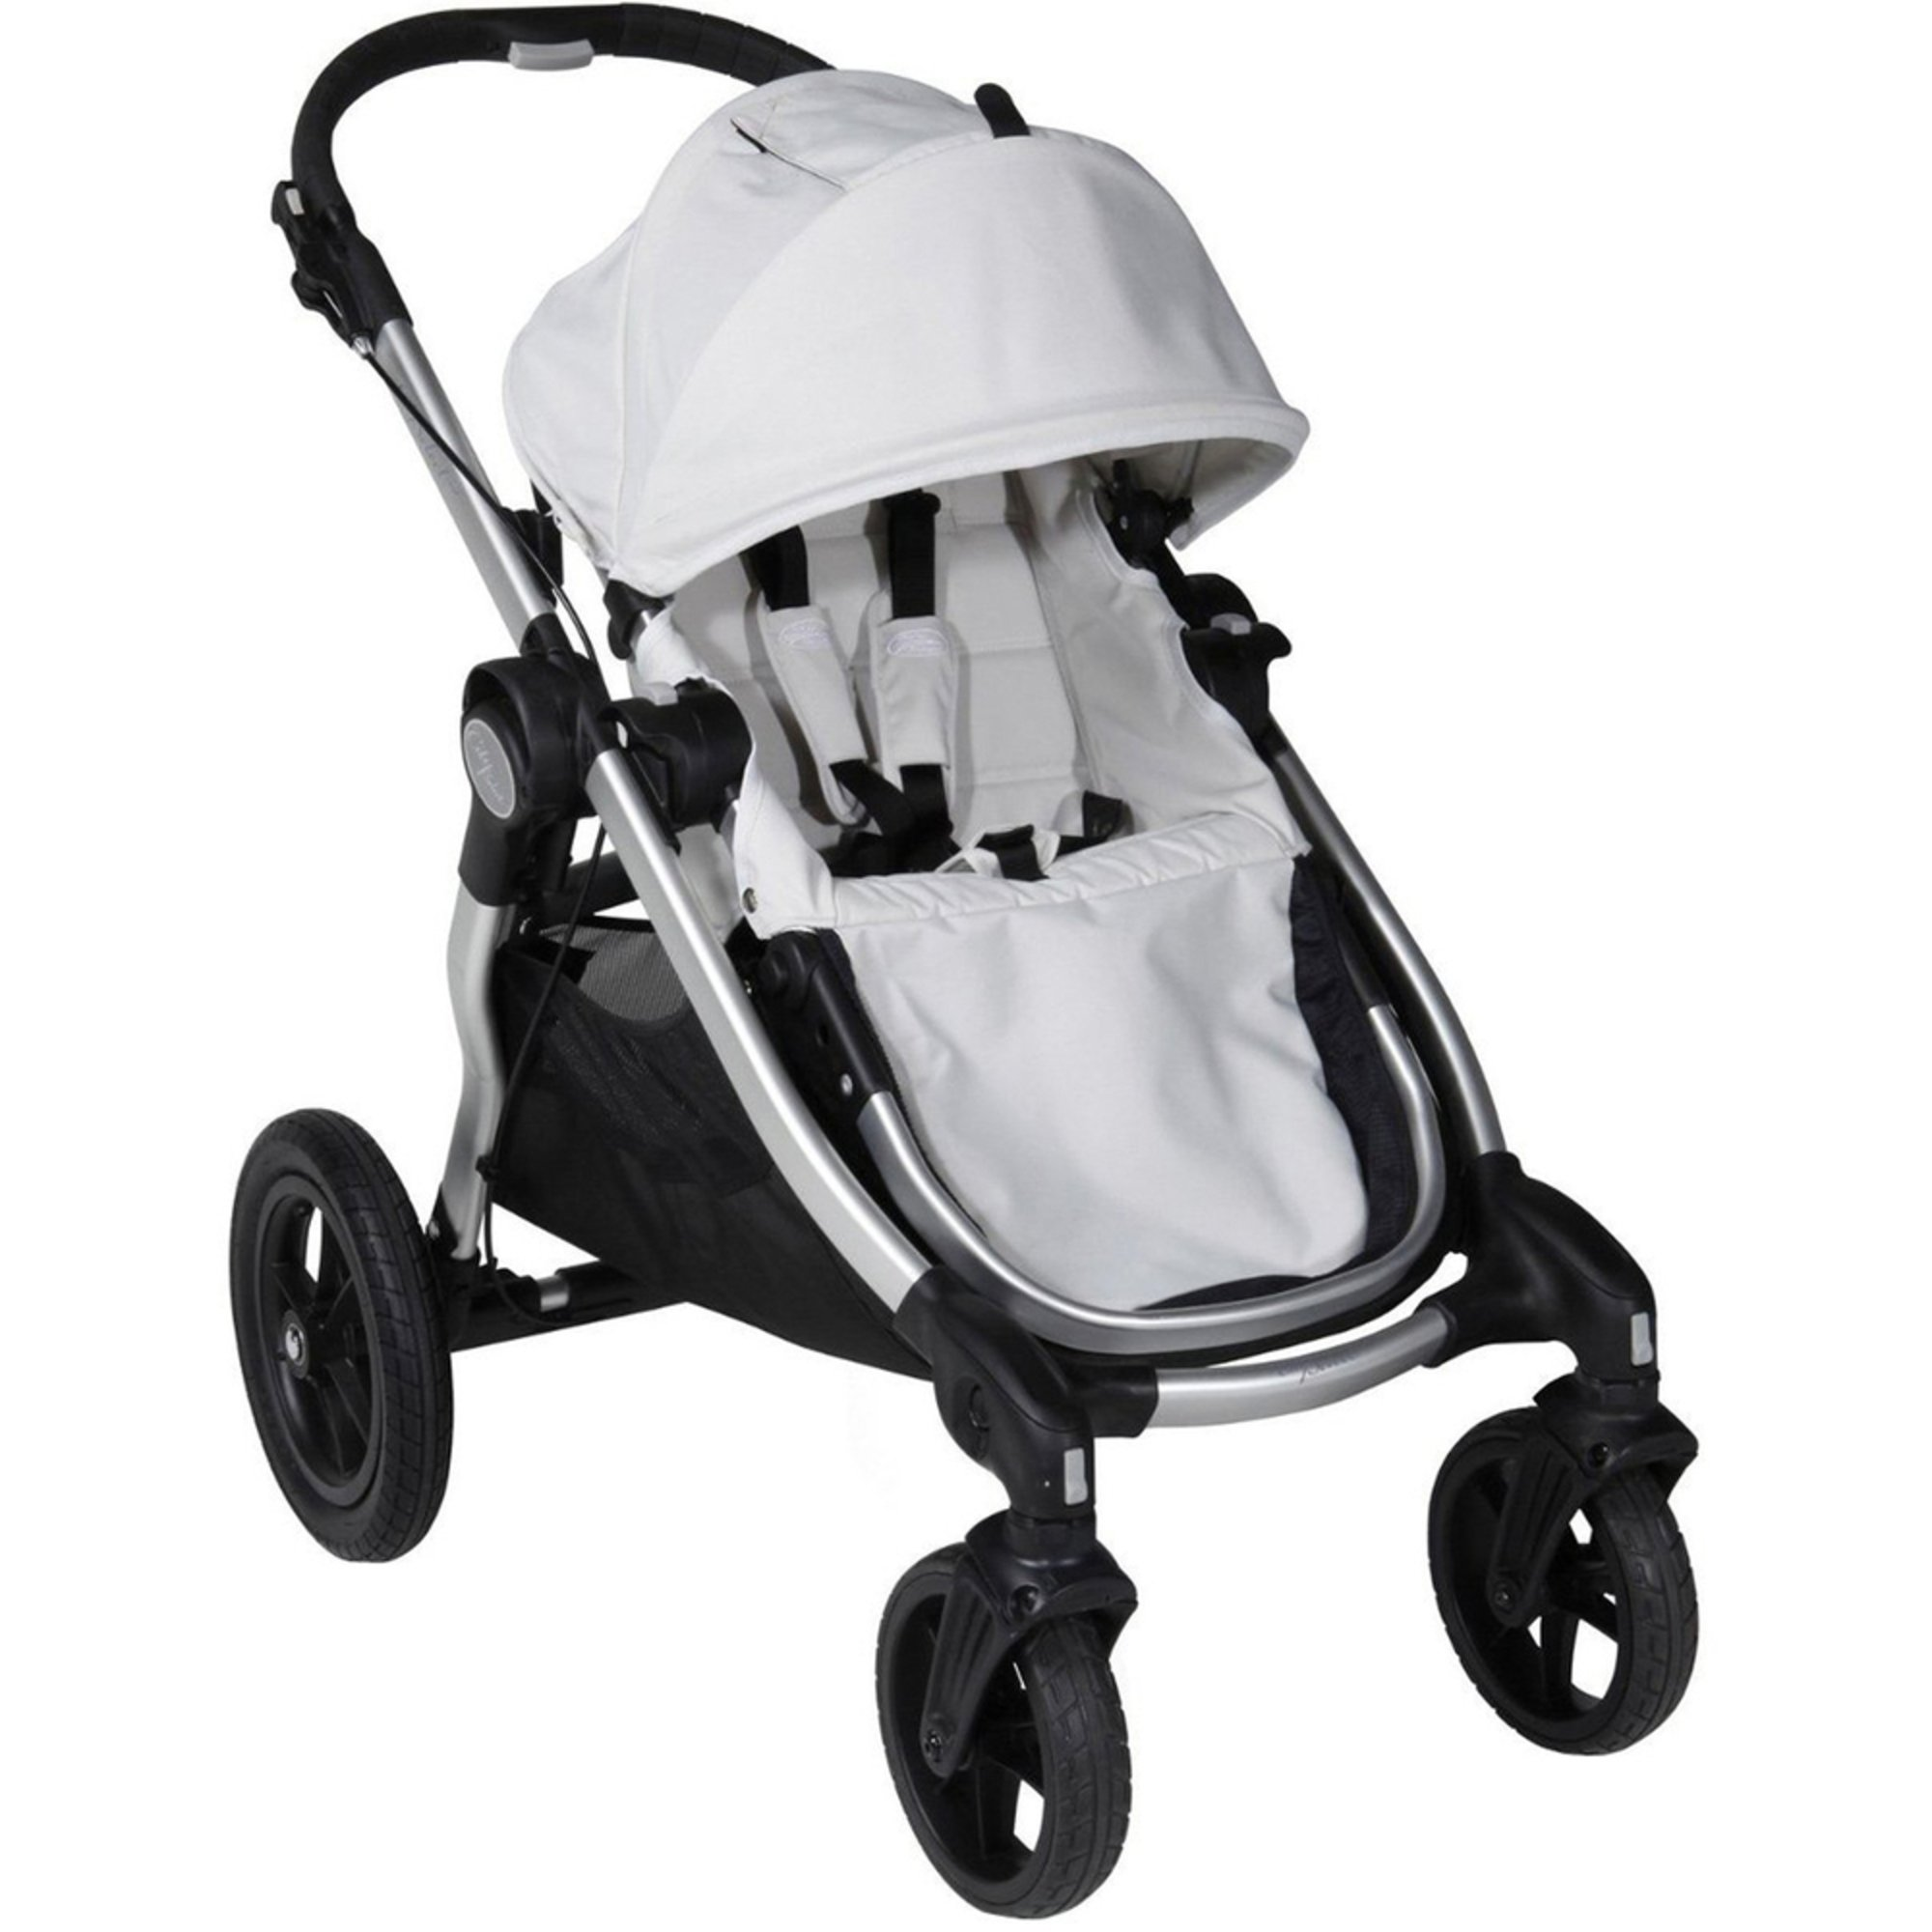 Shop for and buy baby jogger online at Macy's. Find baby jogger at Macy's.